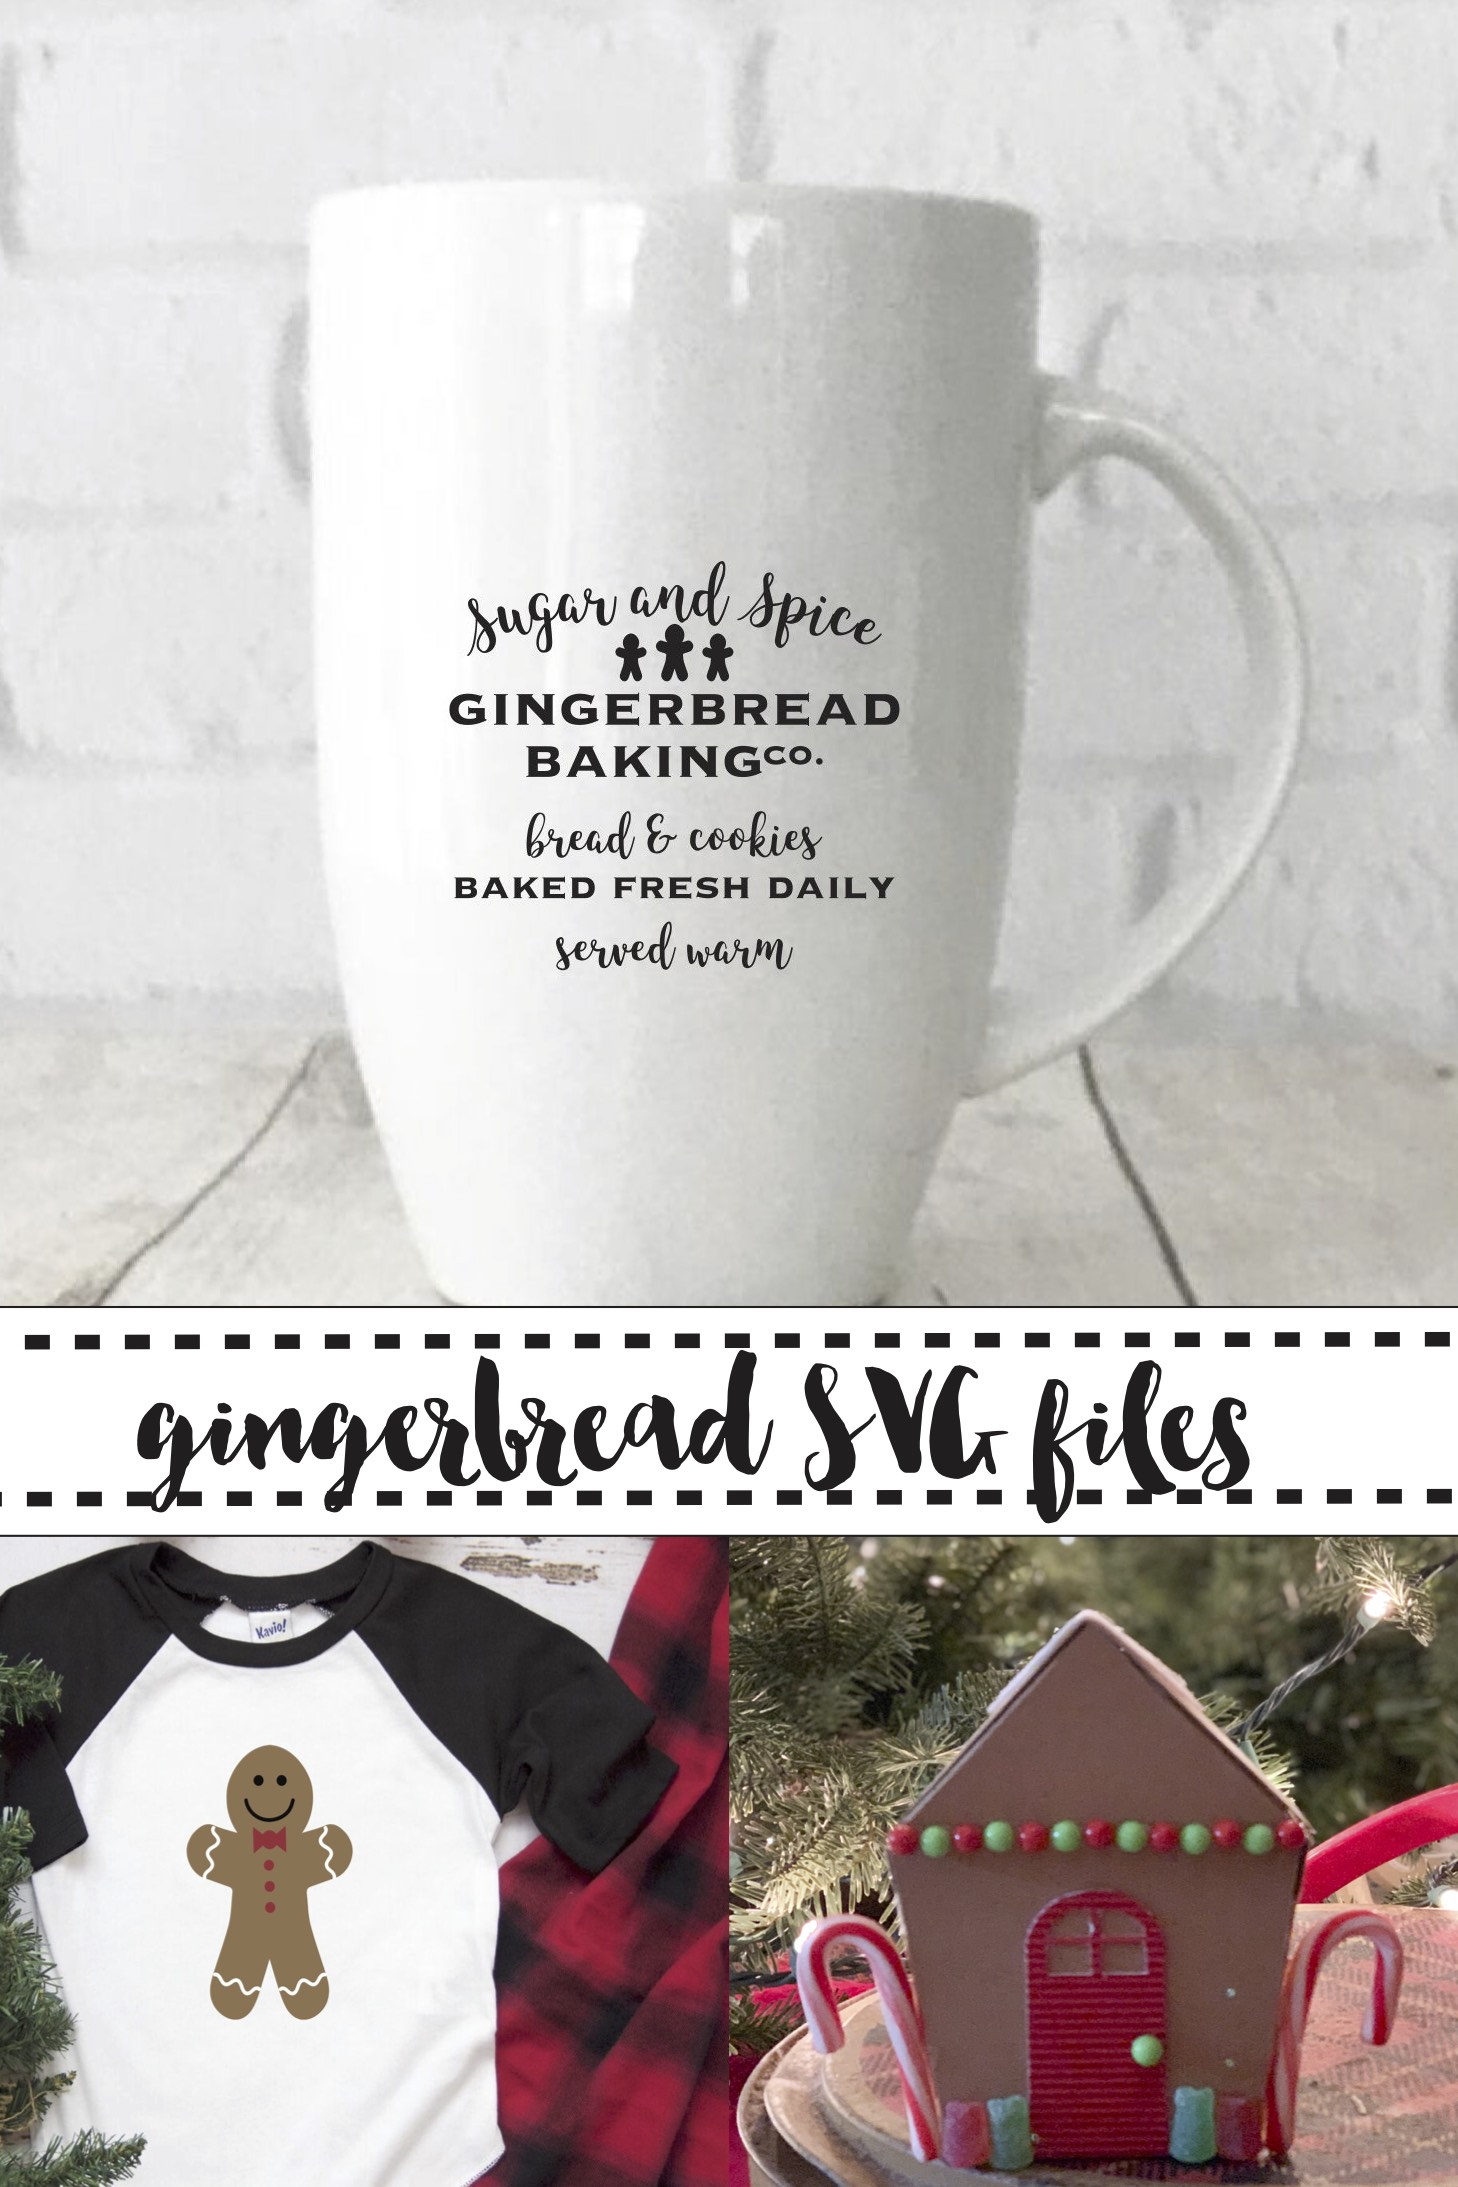 Gingerbread House Gingerbread Shirt Cocoa Mug